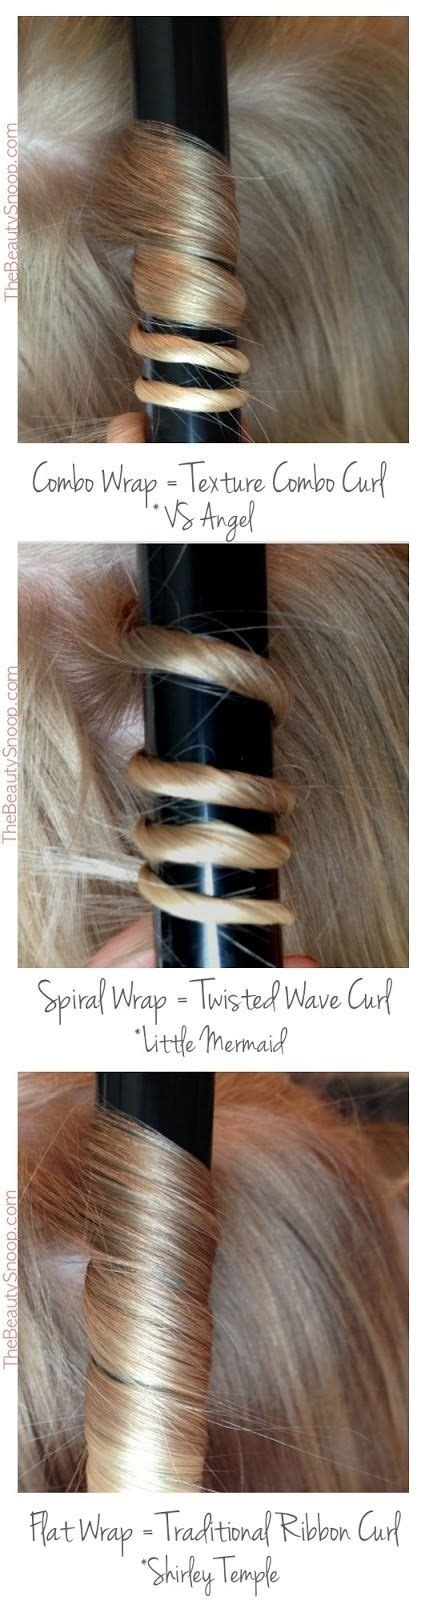 different ways to use the wand different types of curls to do hair styles